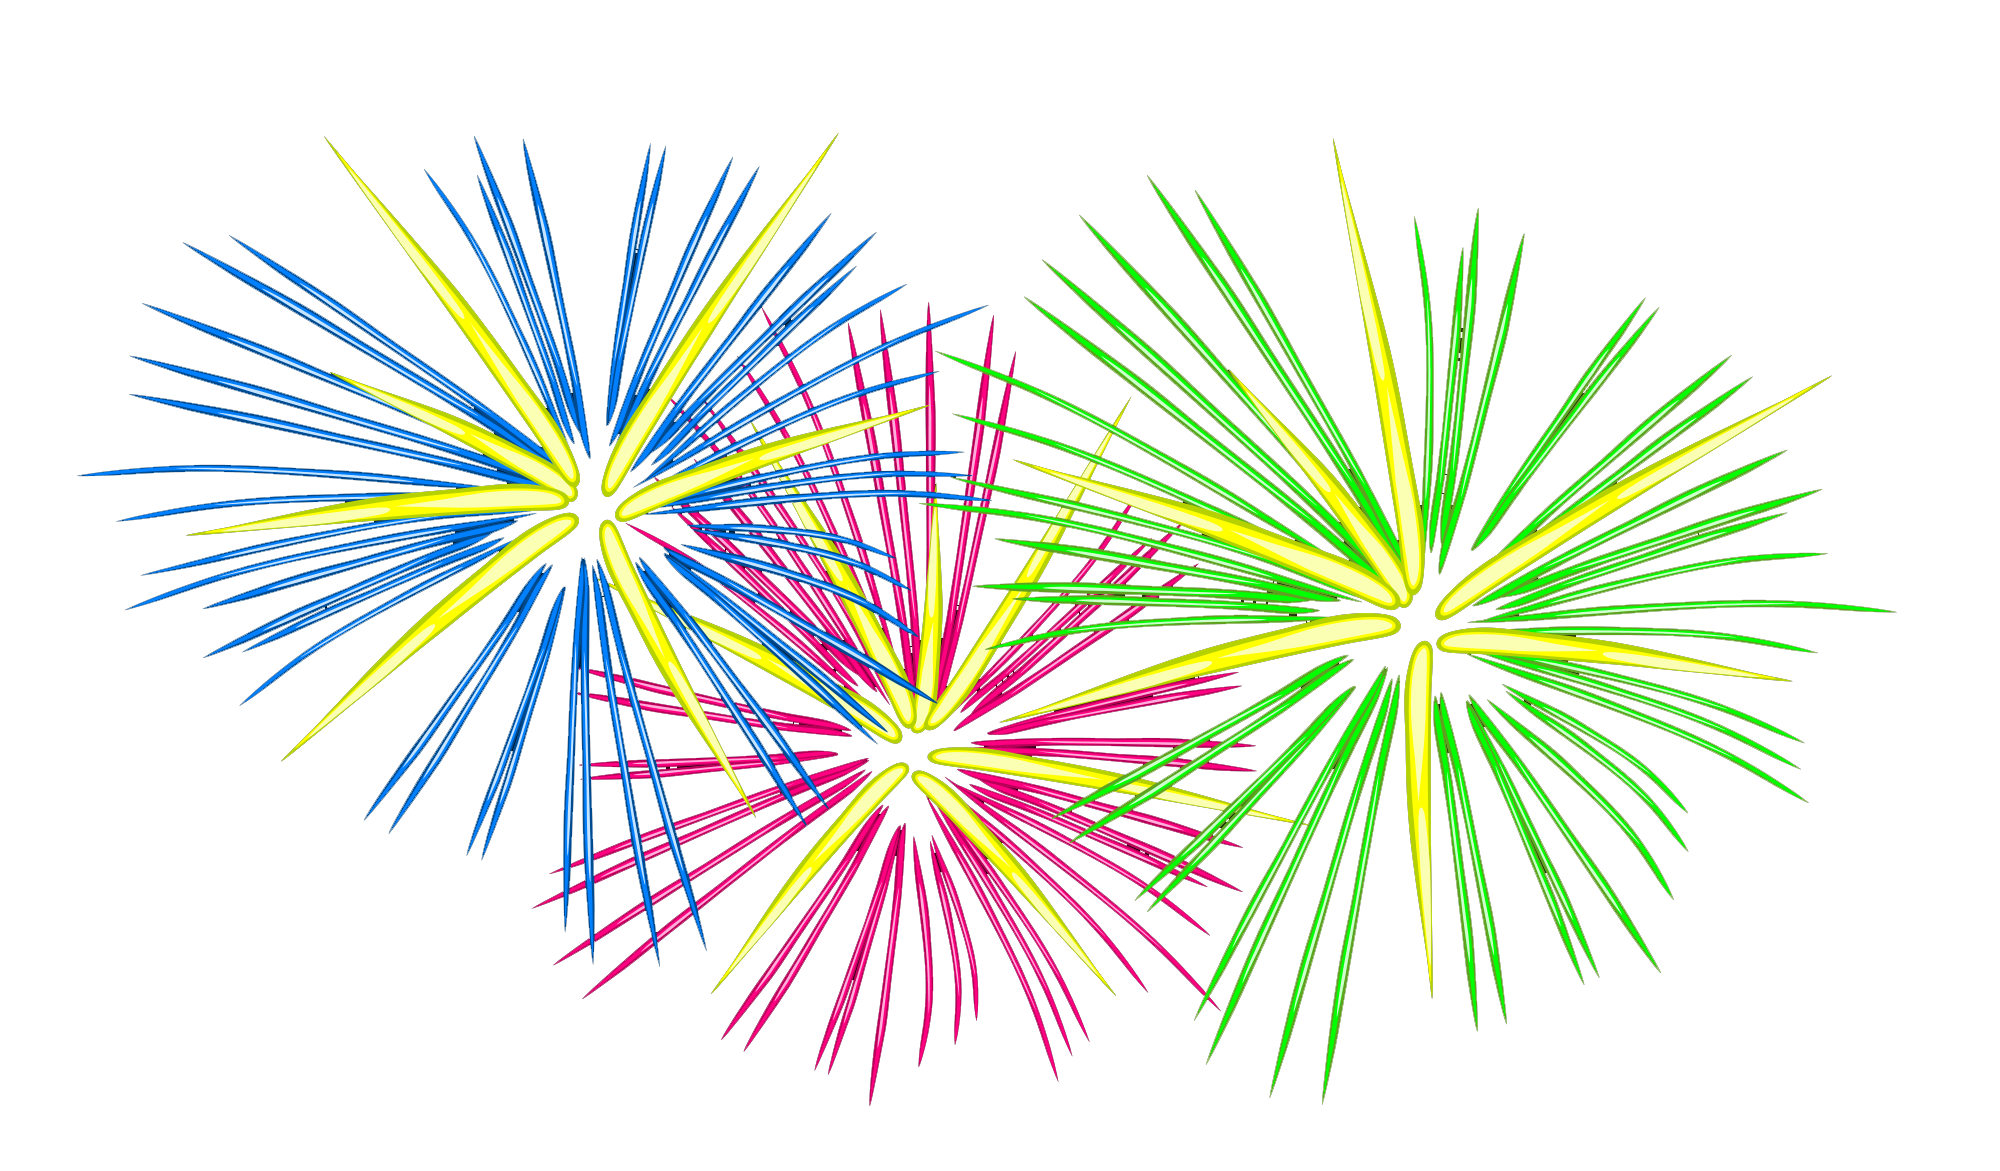 Description Fireworks 2 Png